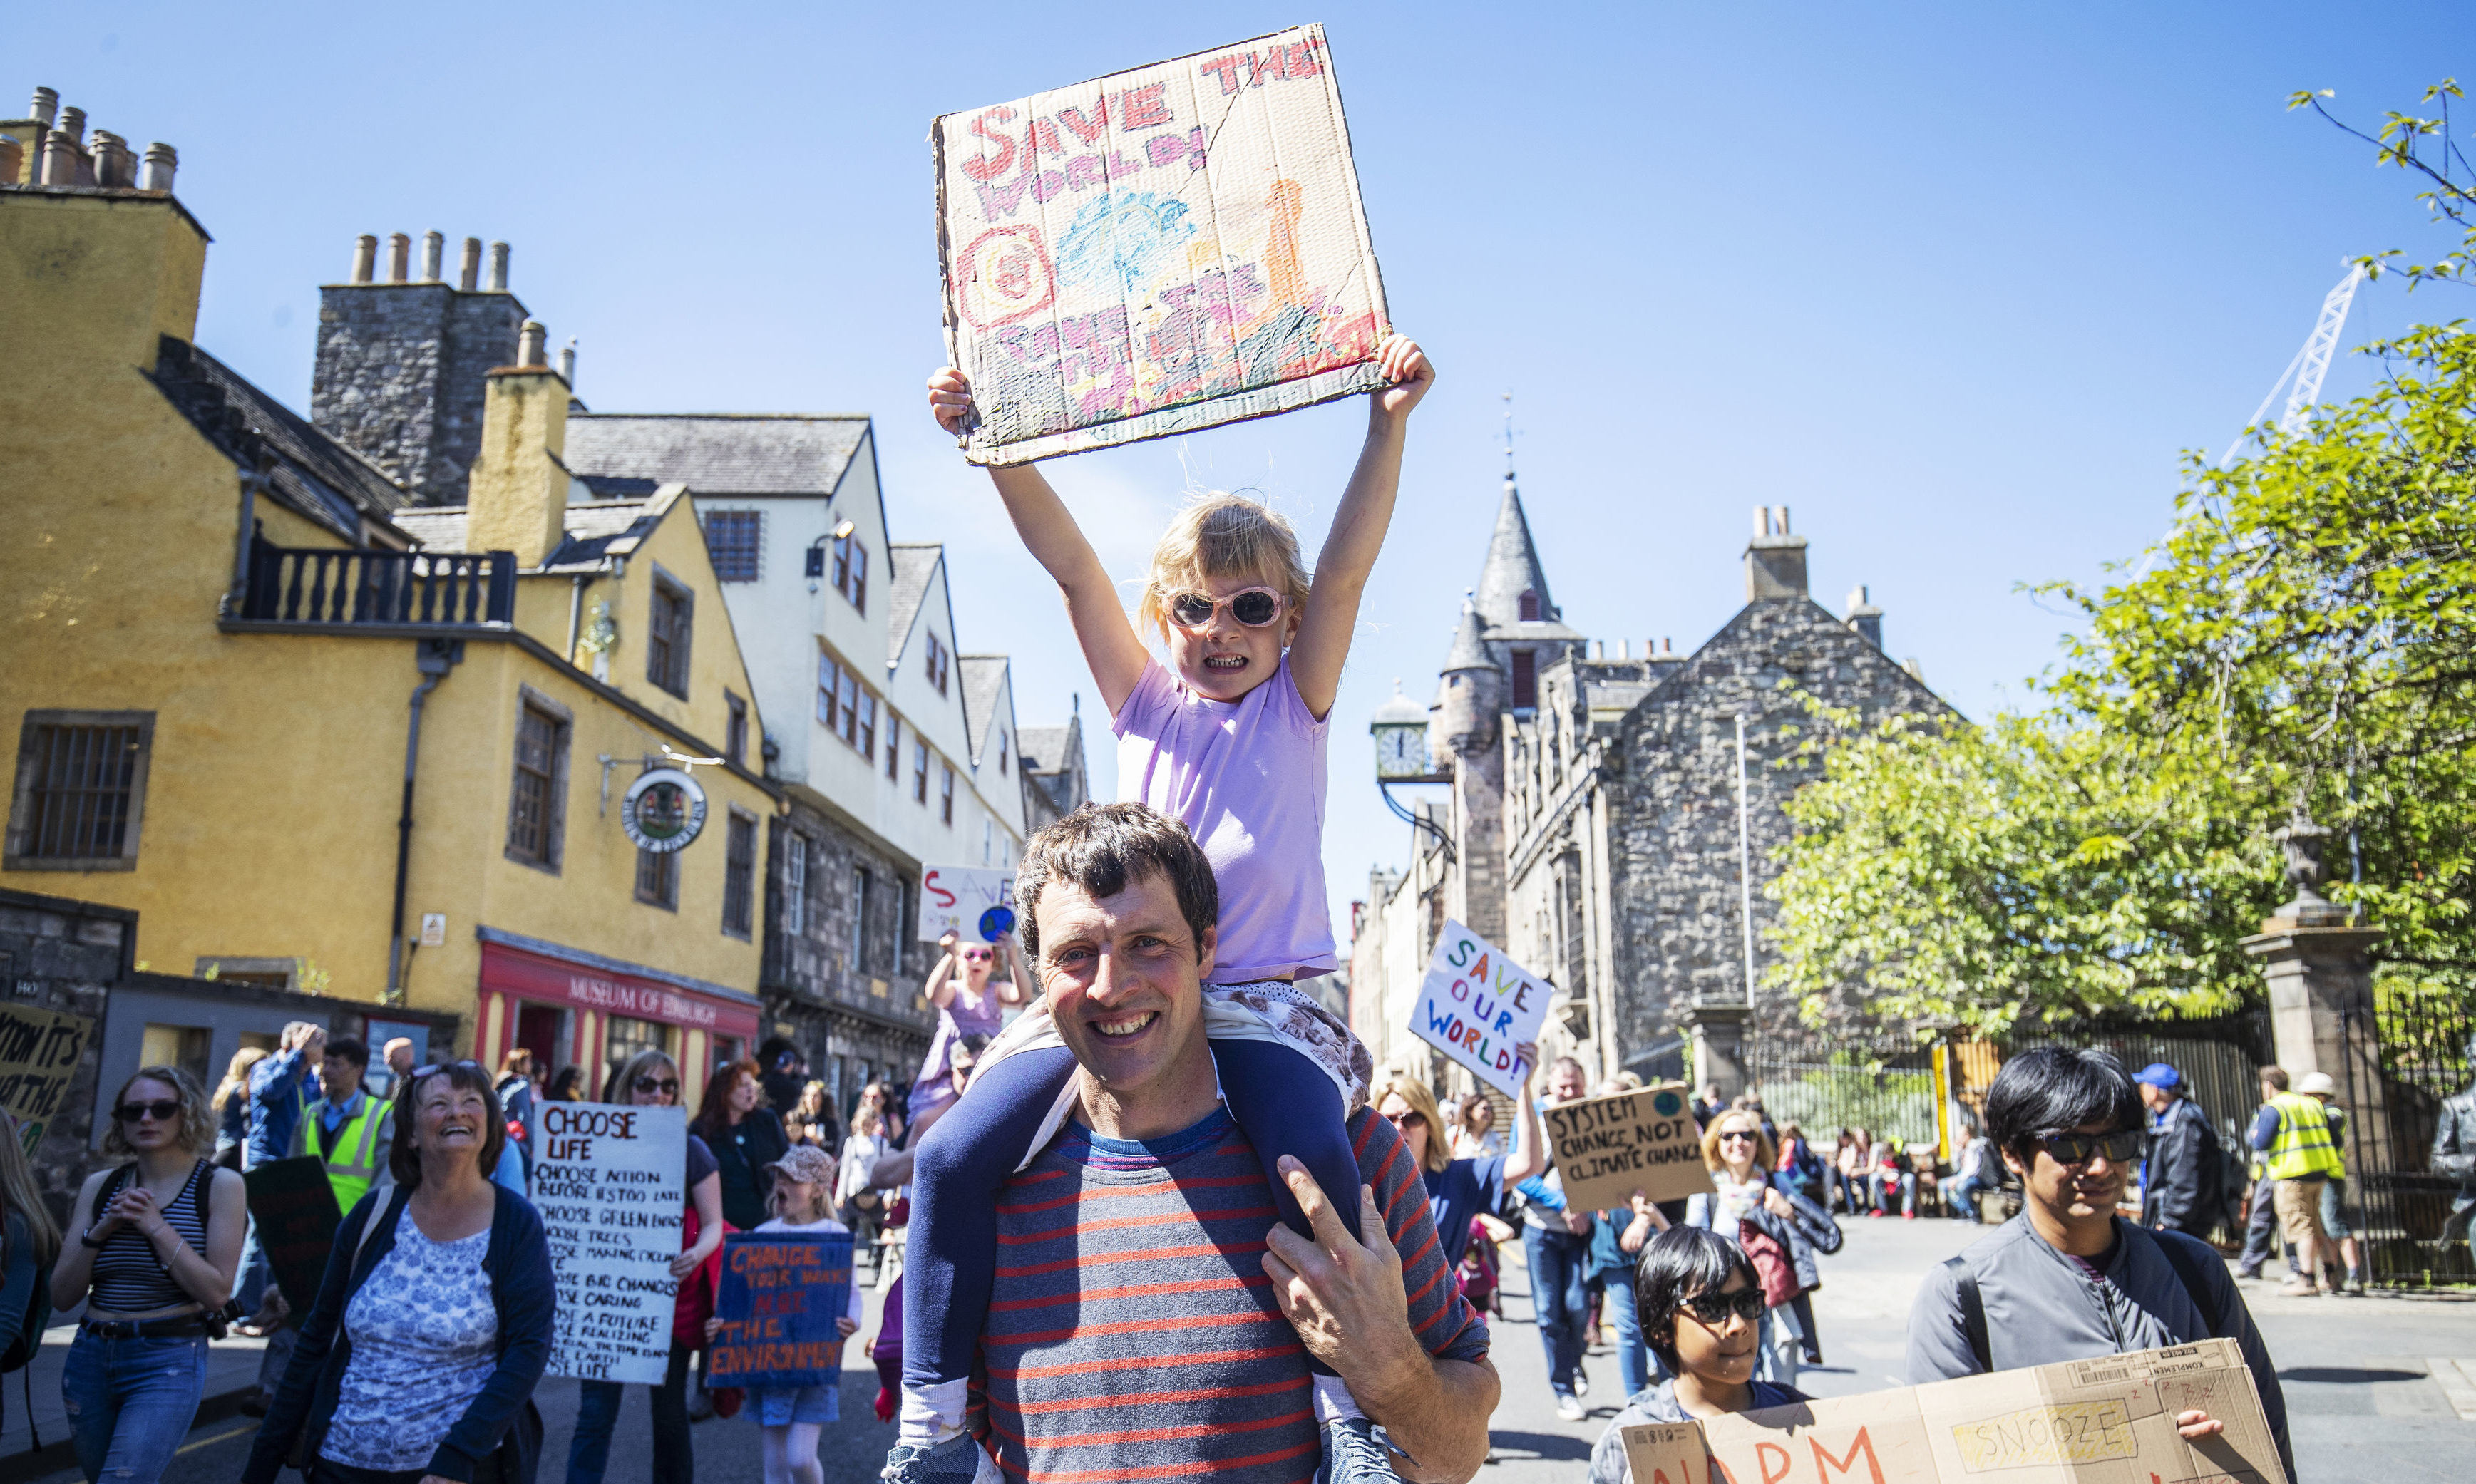 Alan Blackburn with his daughter Hanna Blackburn, five, join thousands of school children and students taking part in the Scottish Youth Climate Strike, in Holyrood to demand urgent action to tackle climate change.